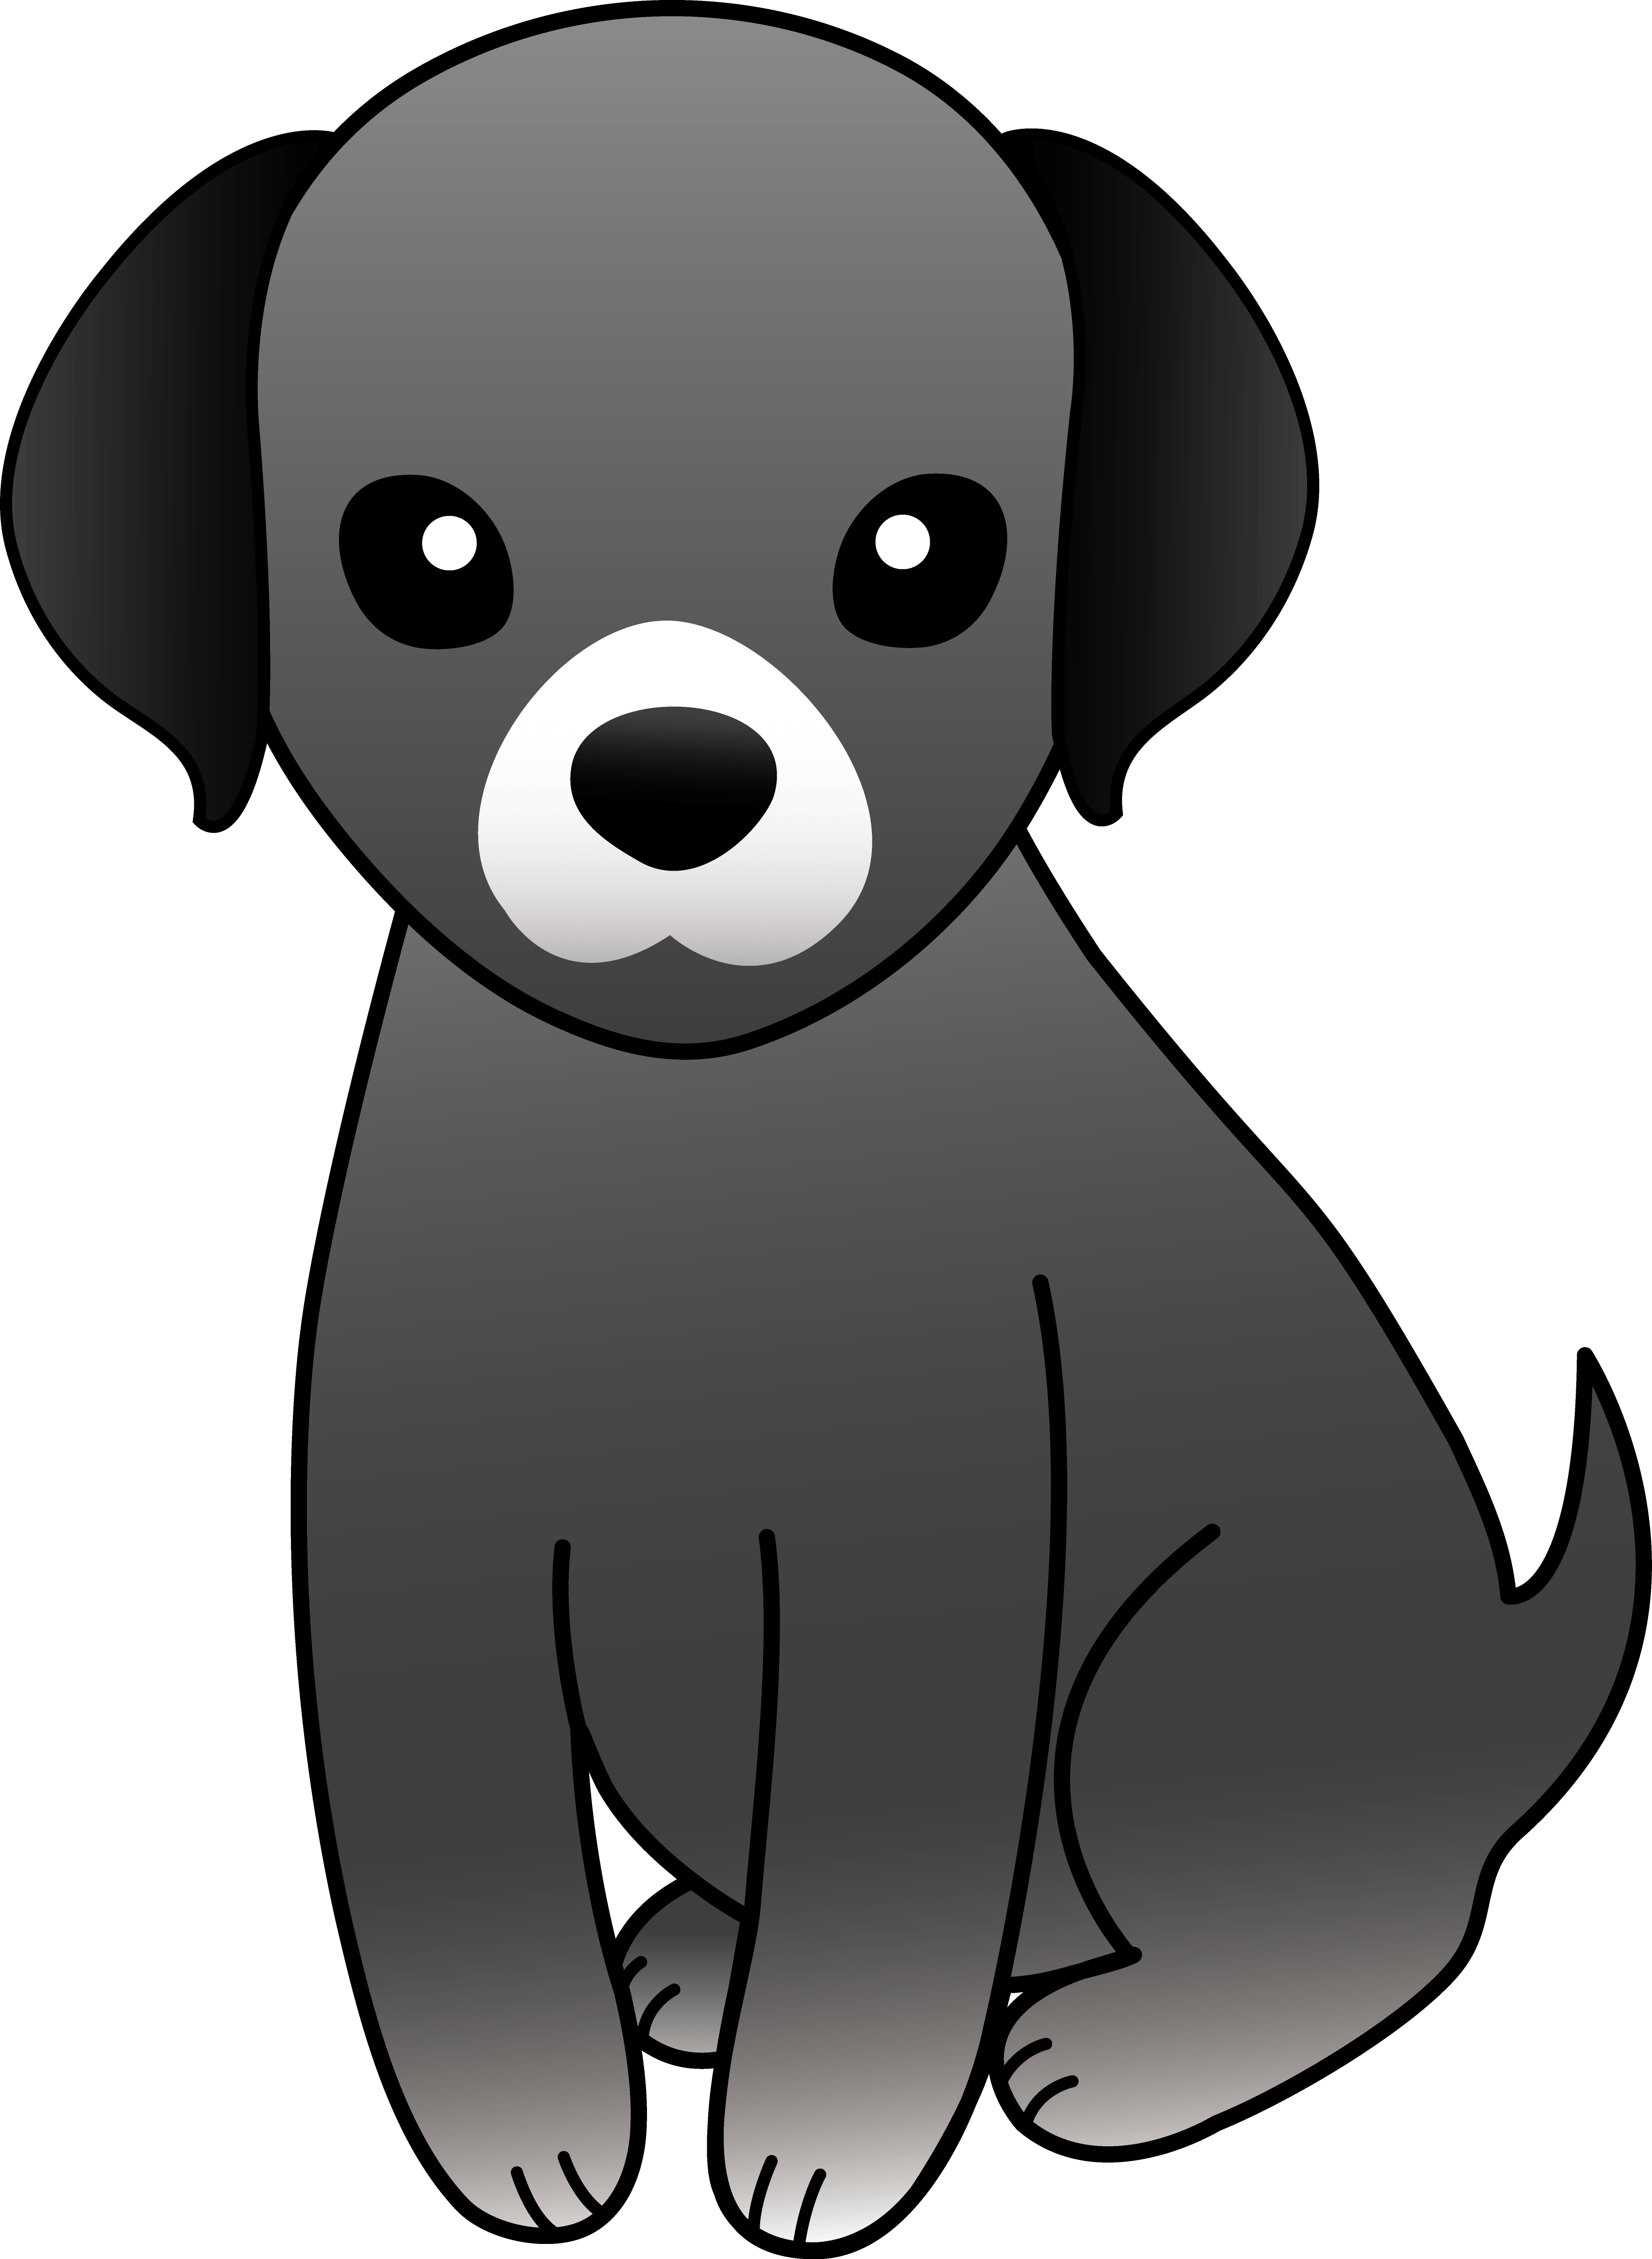 Black and white dog clipart free clip art download Puppy Dog Cliparts - Cliparts Zone clip art download